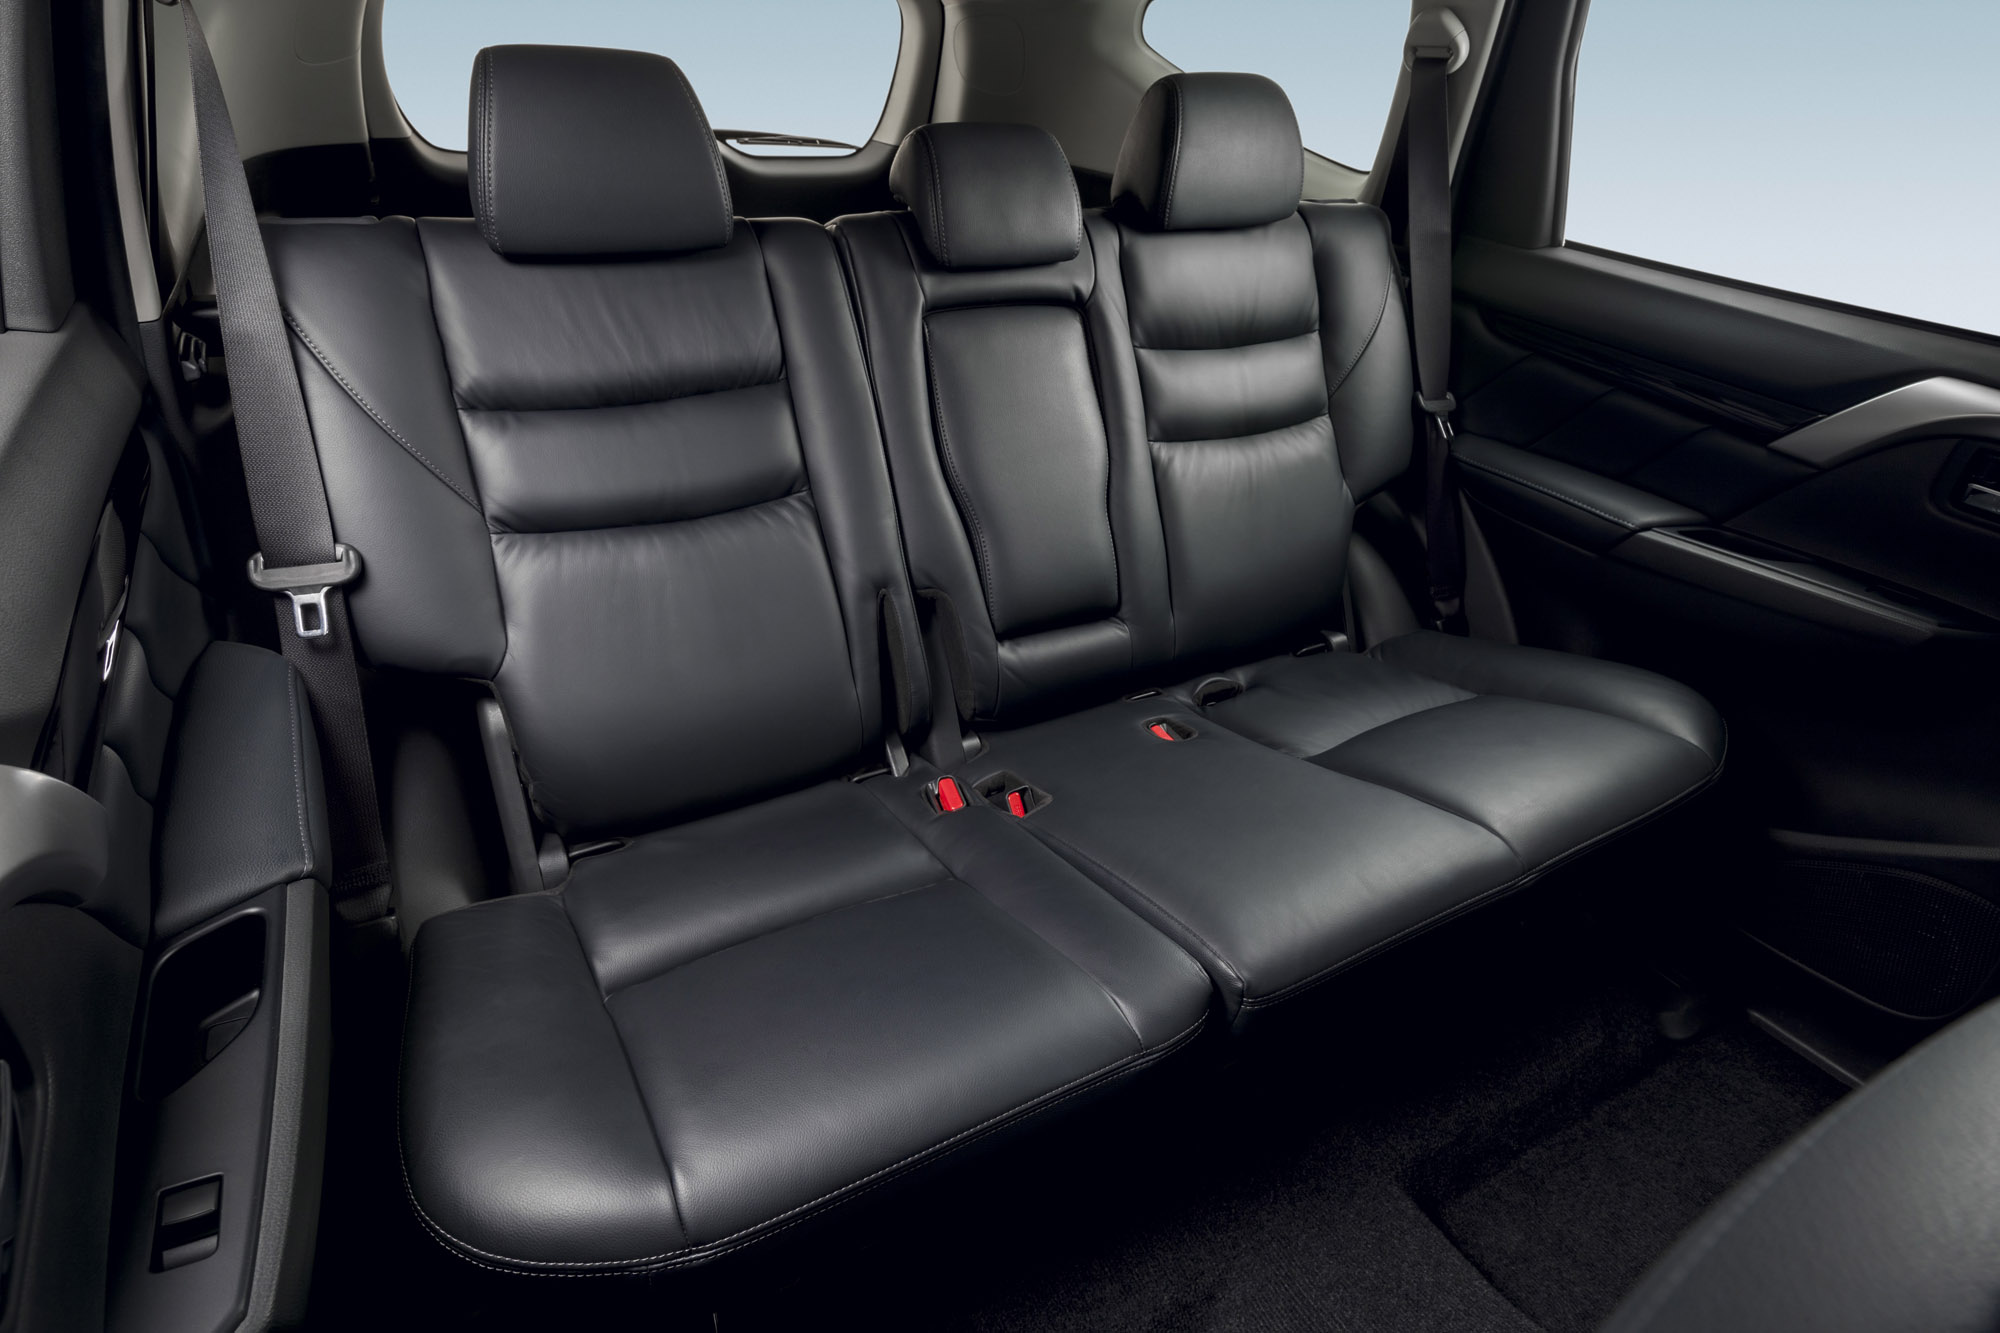 2016 Mitsubishi Pajero Sport Rear Seats Interior (Photo 16 of 23)